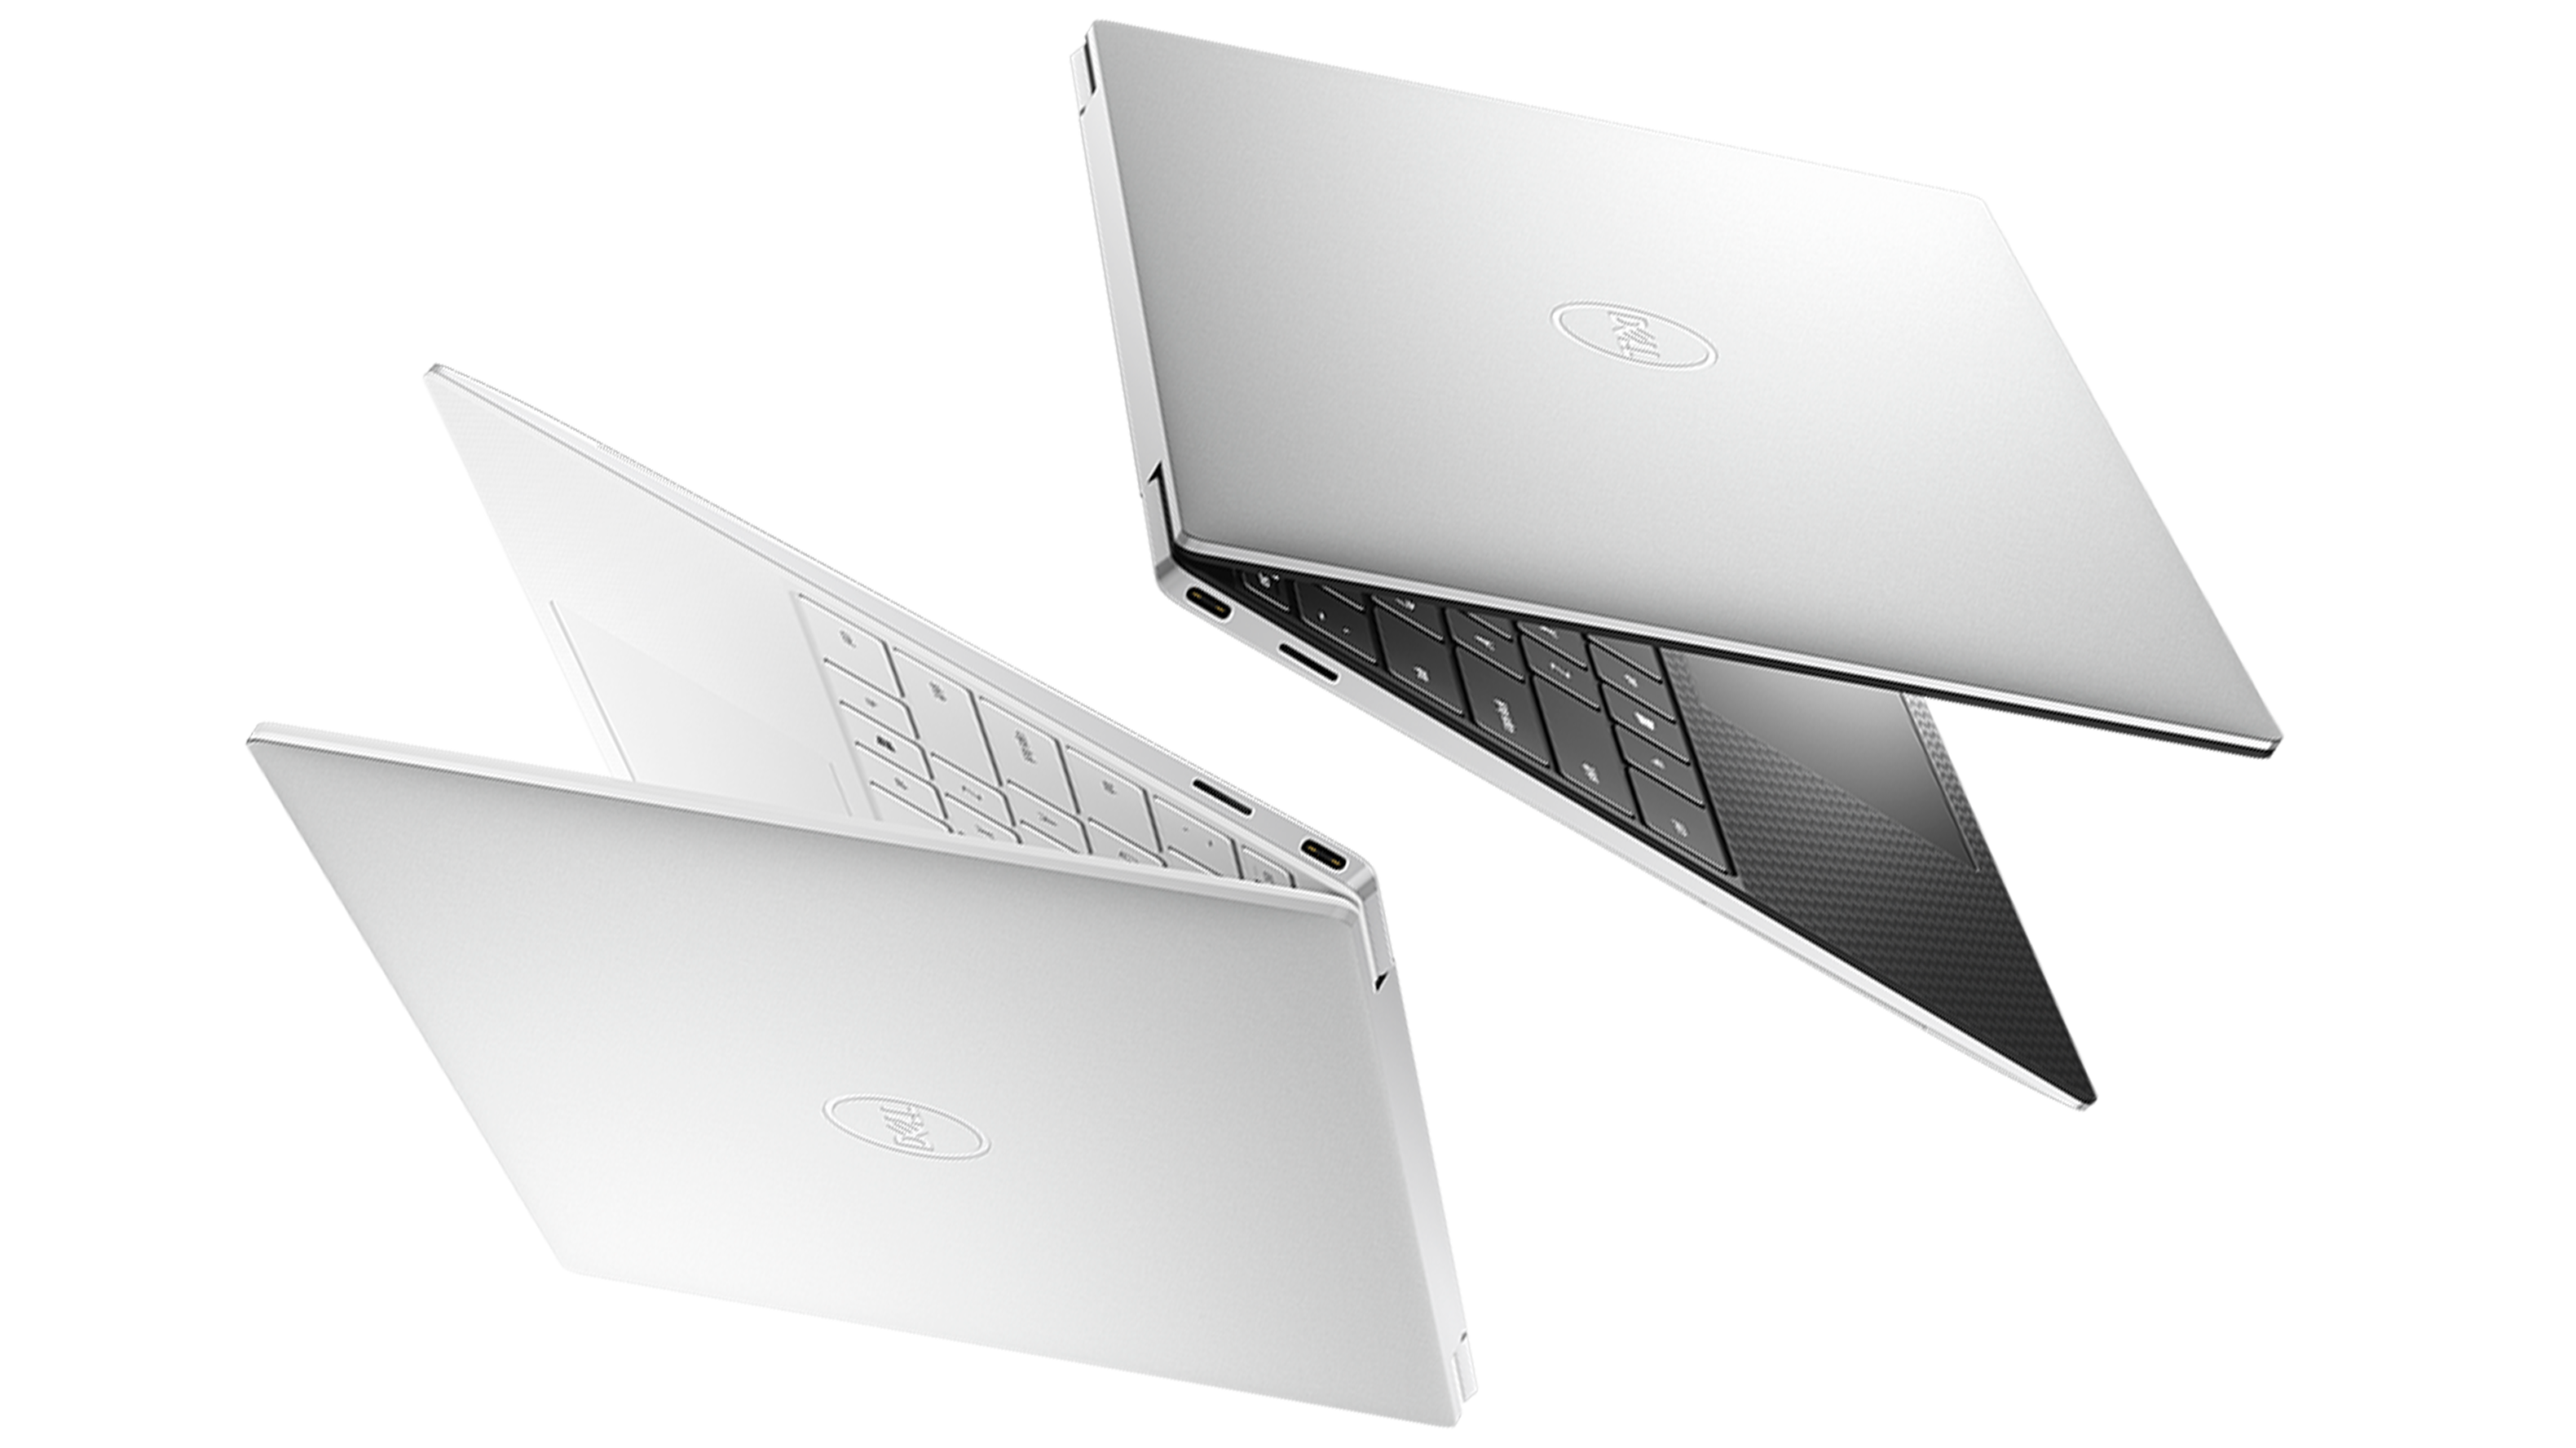 Dell XPS 13 2020 in black and white